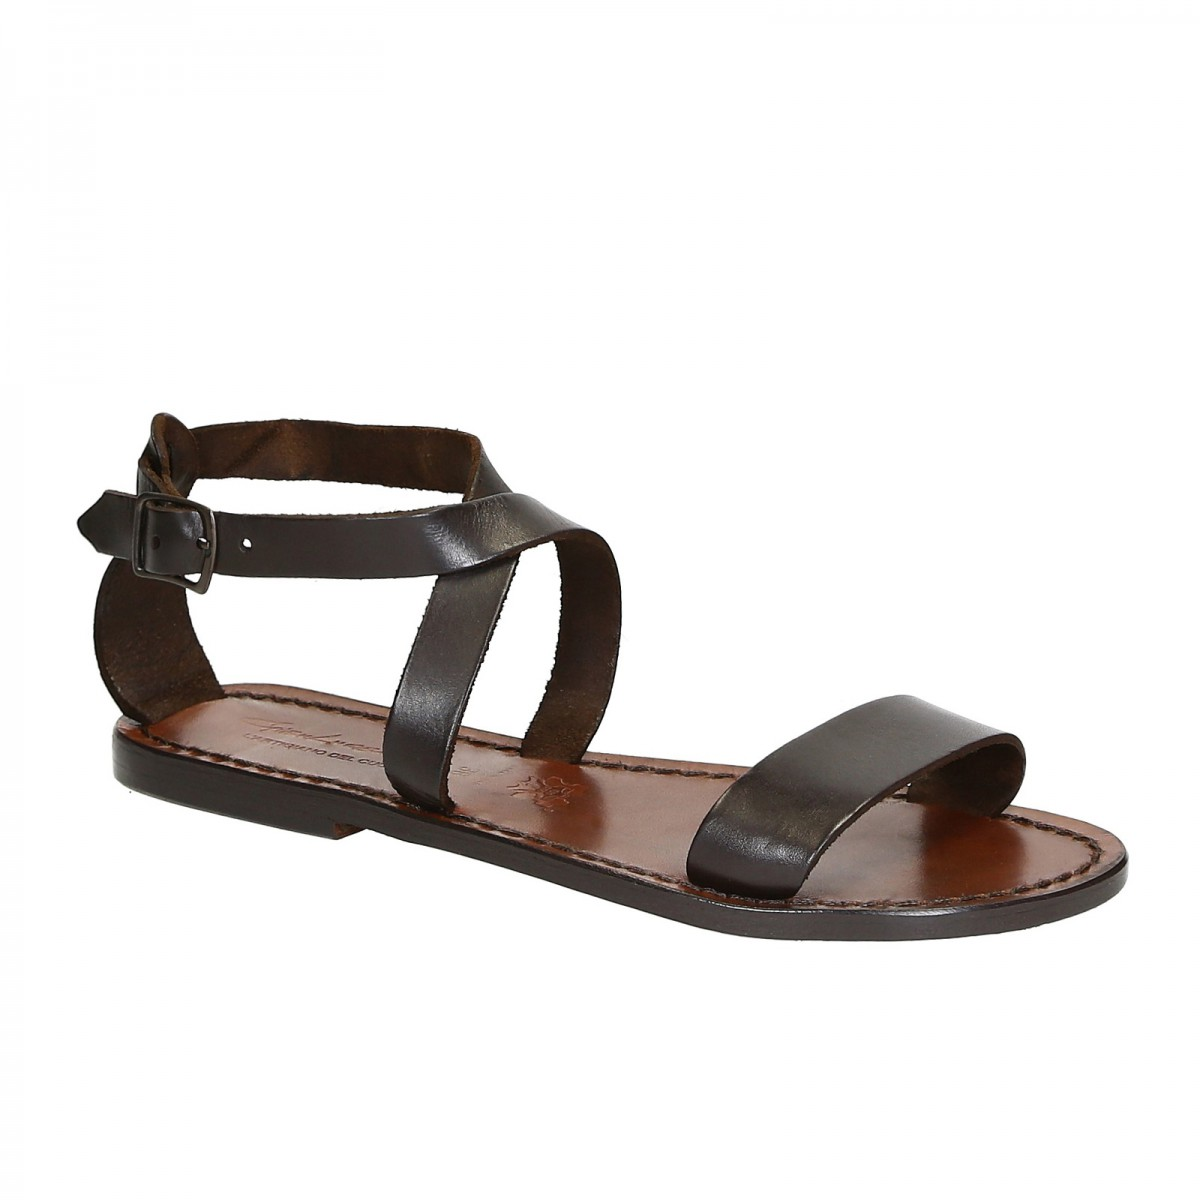 54af4de01aba7 Womens sandals in Dark Brown Leather handmade in Italy. Loading zoom